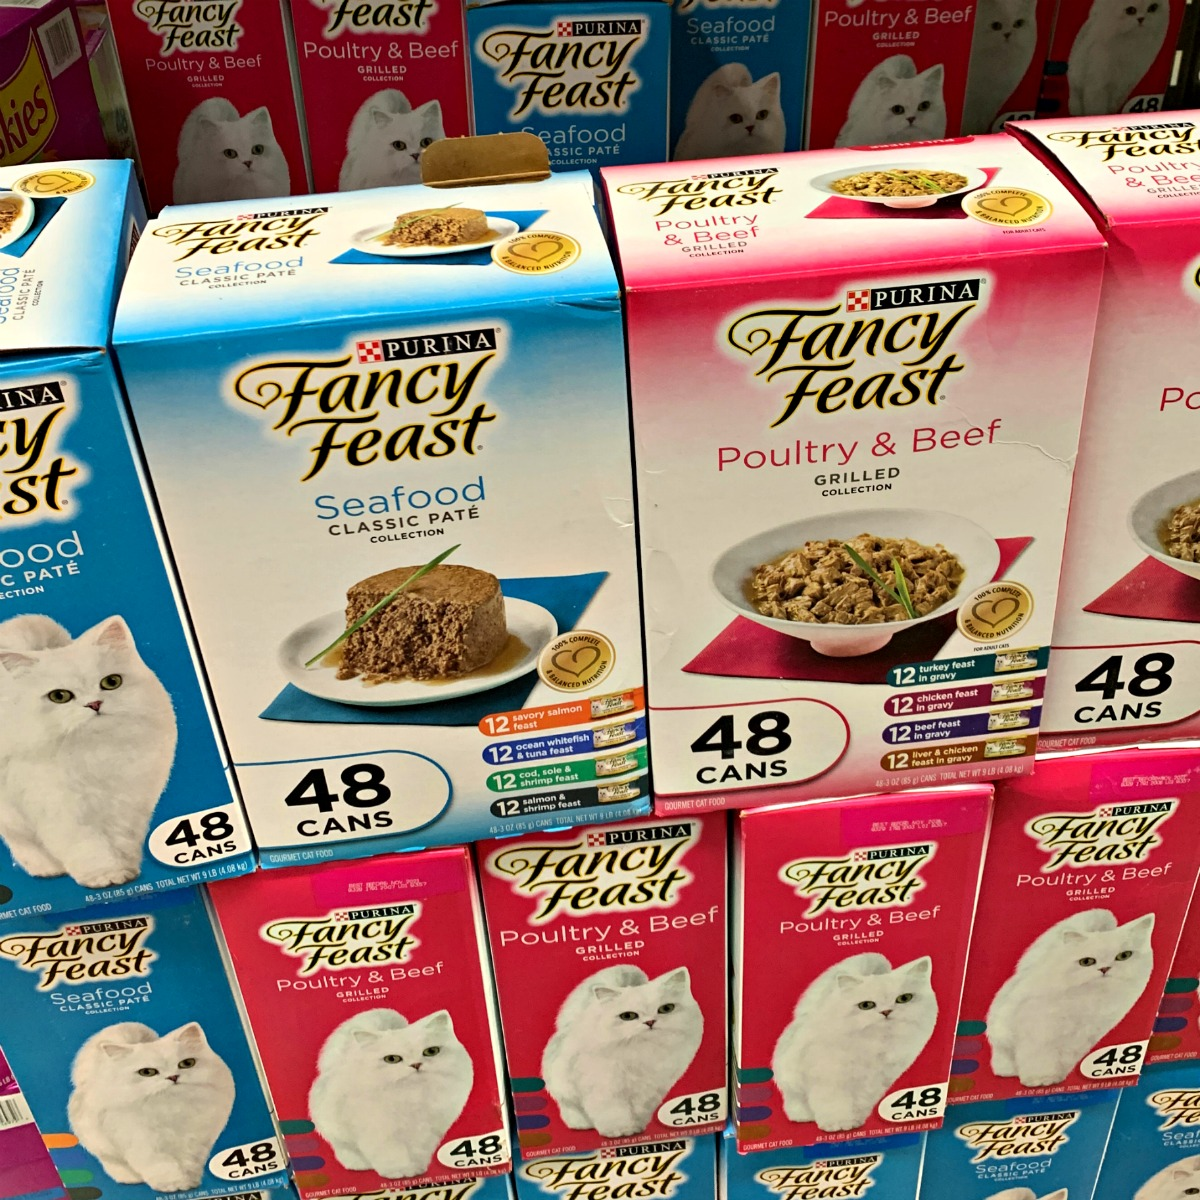 Purina Fancy Feast options at Sam's Club - pack of 48 cans